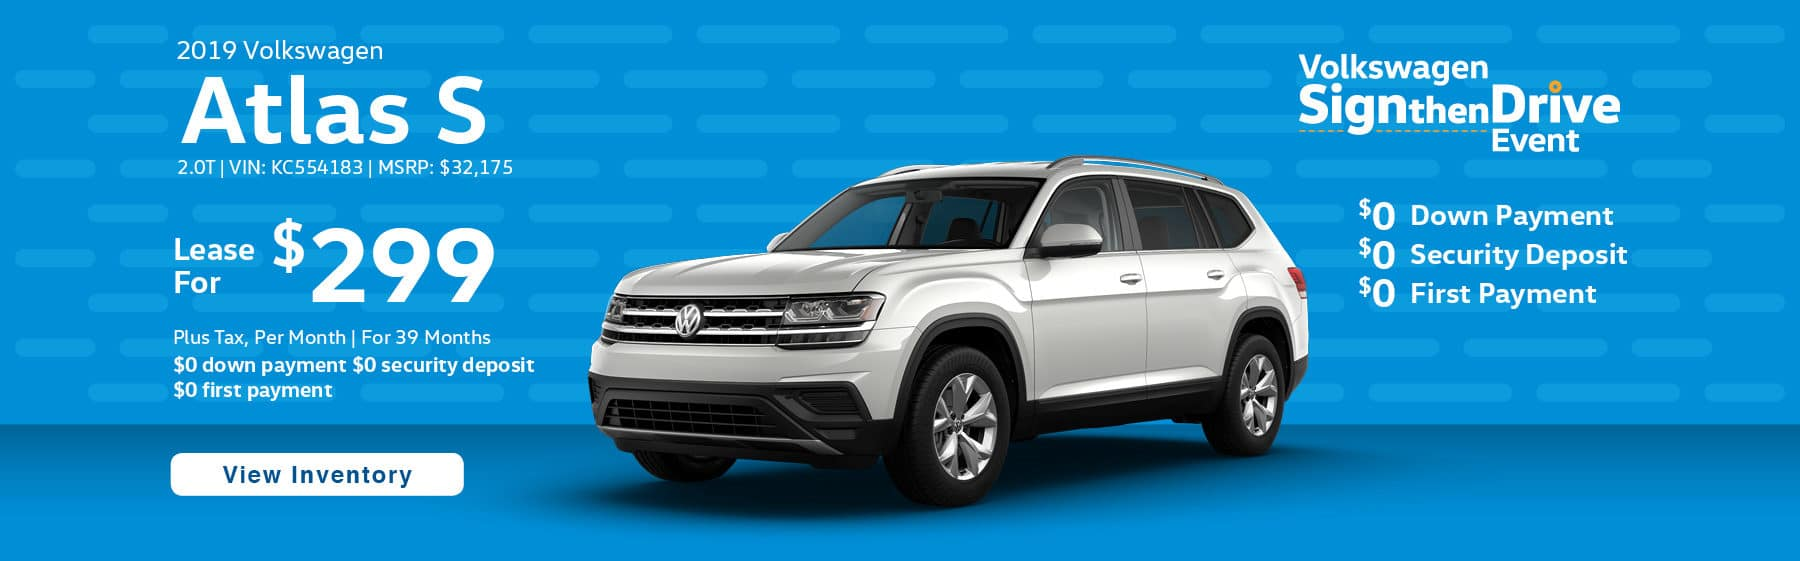 Lease the 2019 Volkswagen Atlas S for $299 plus tax for 39 months. $0 Down payment required.